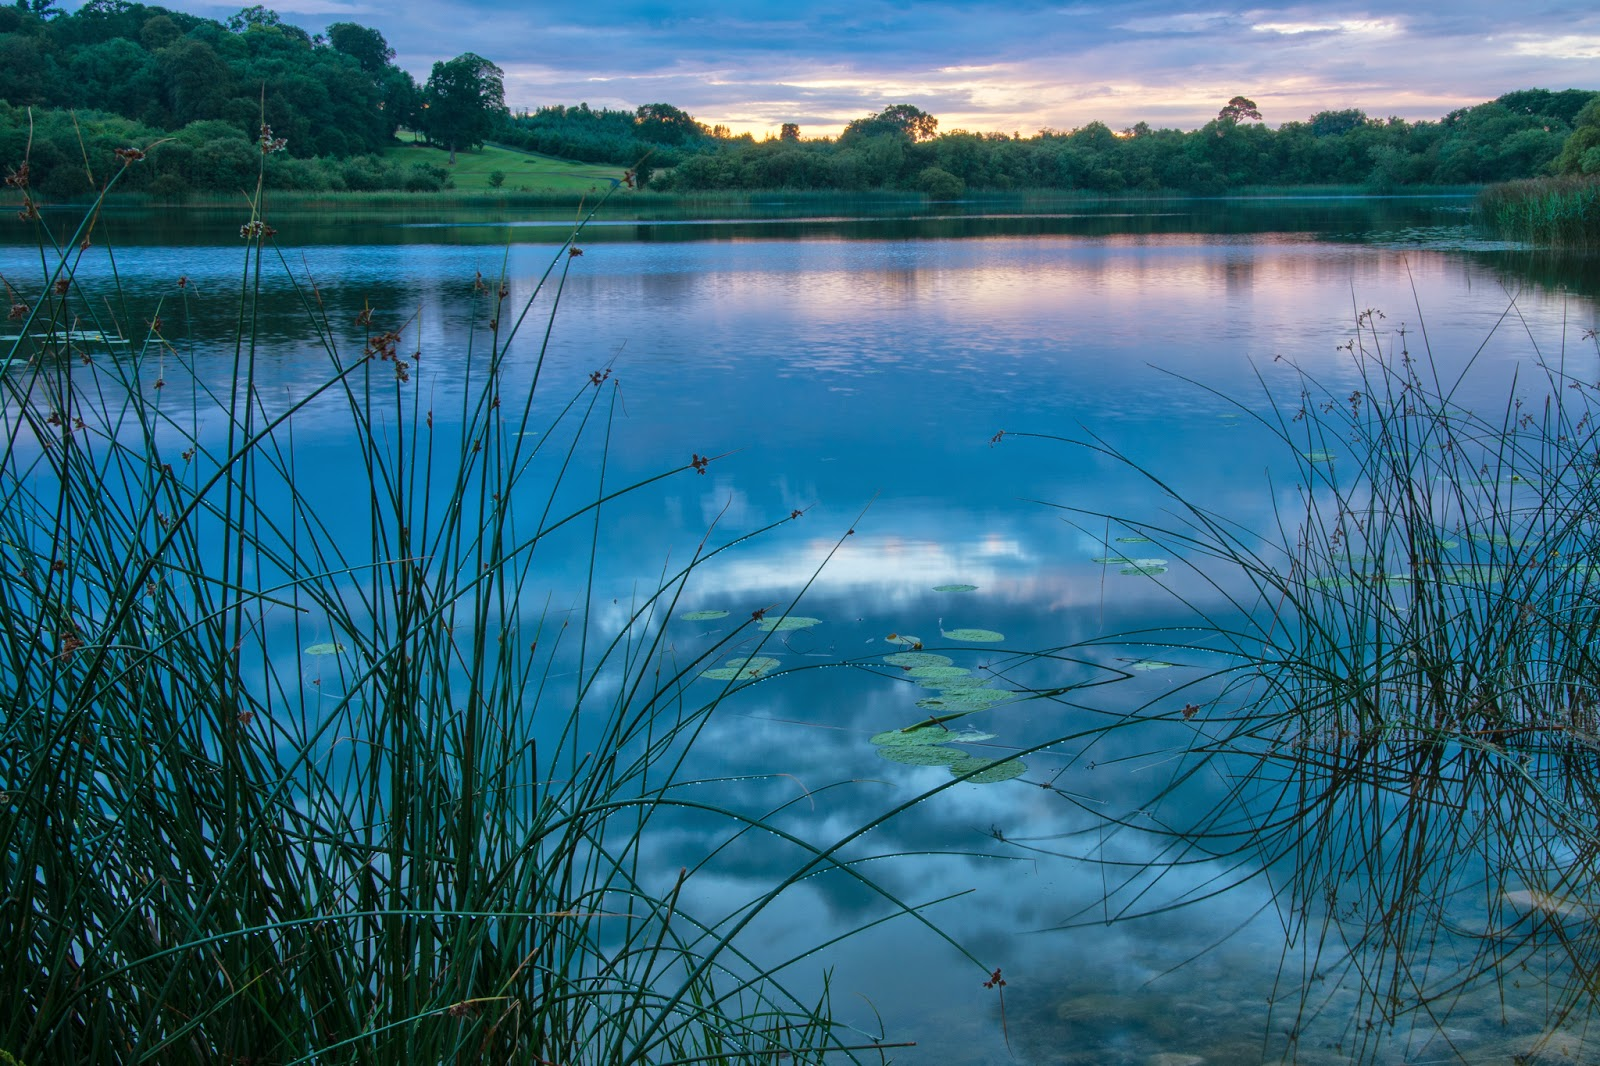 Sunset at Dromoland Lough